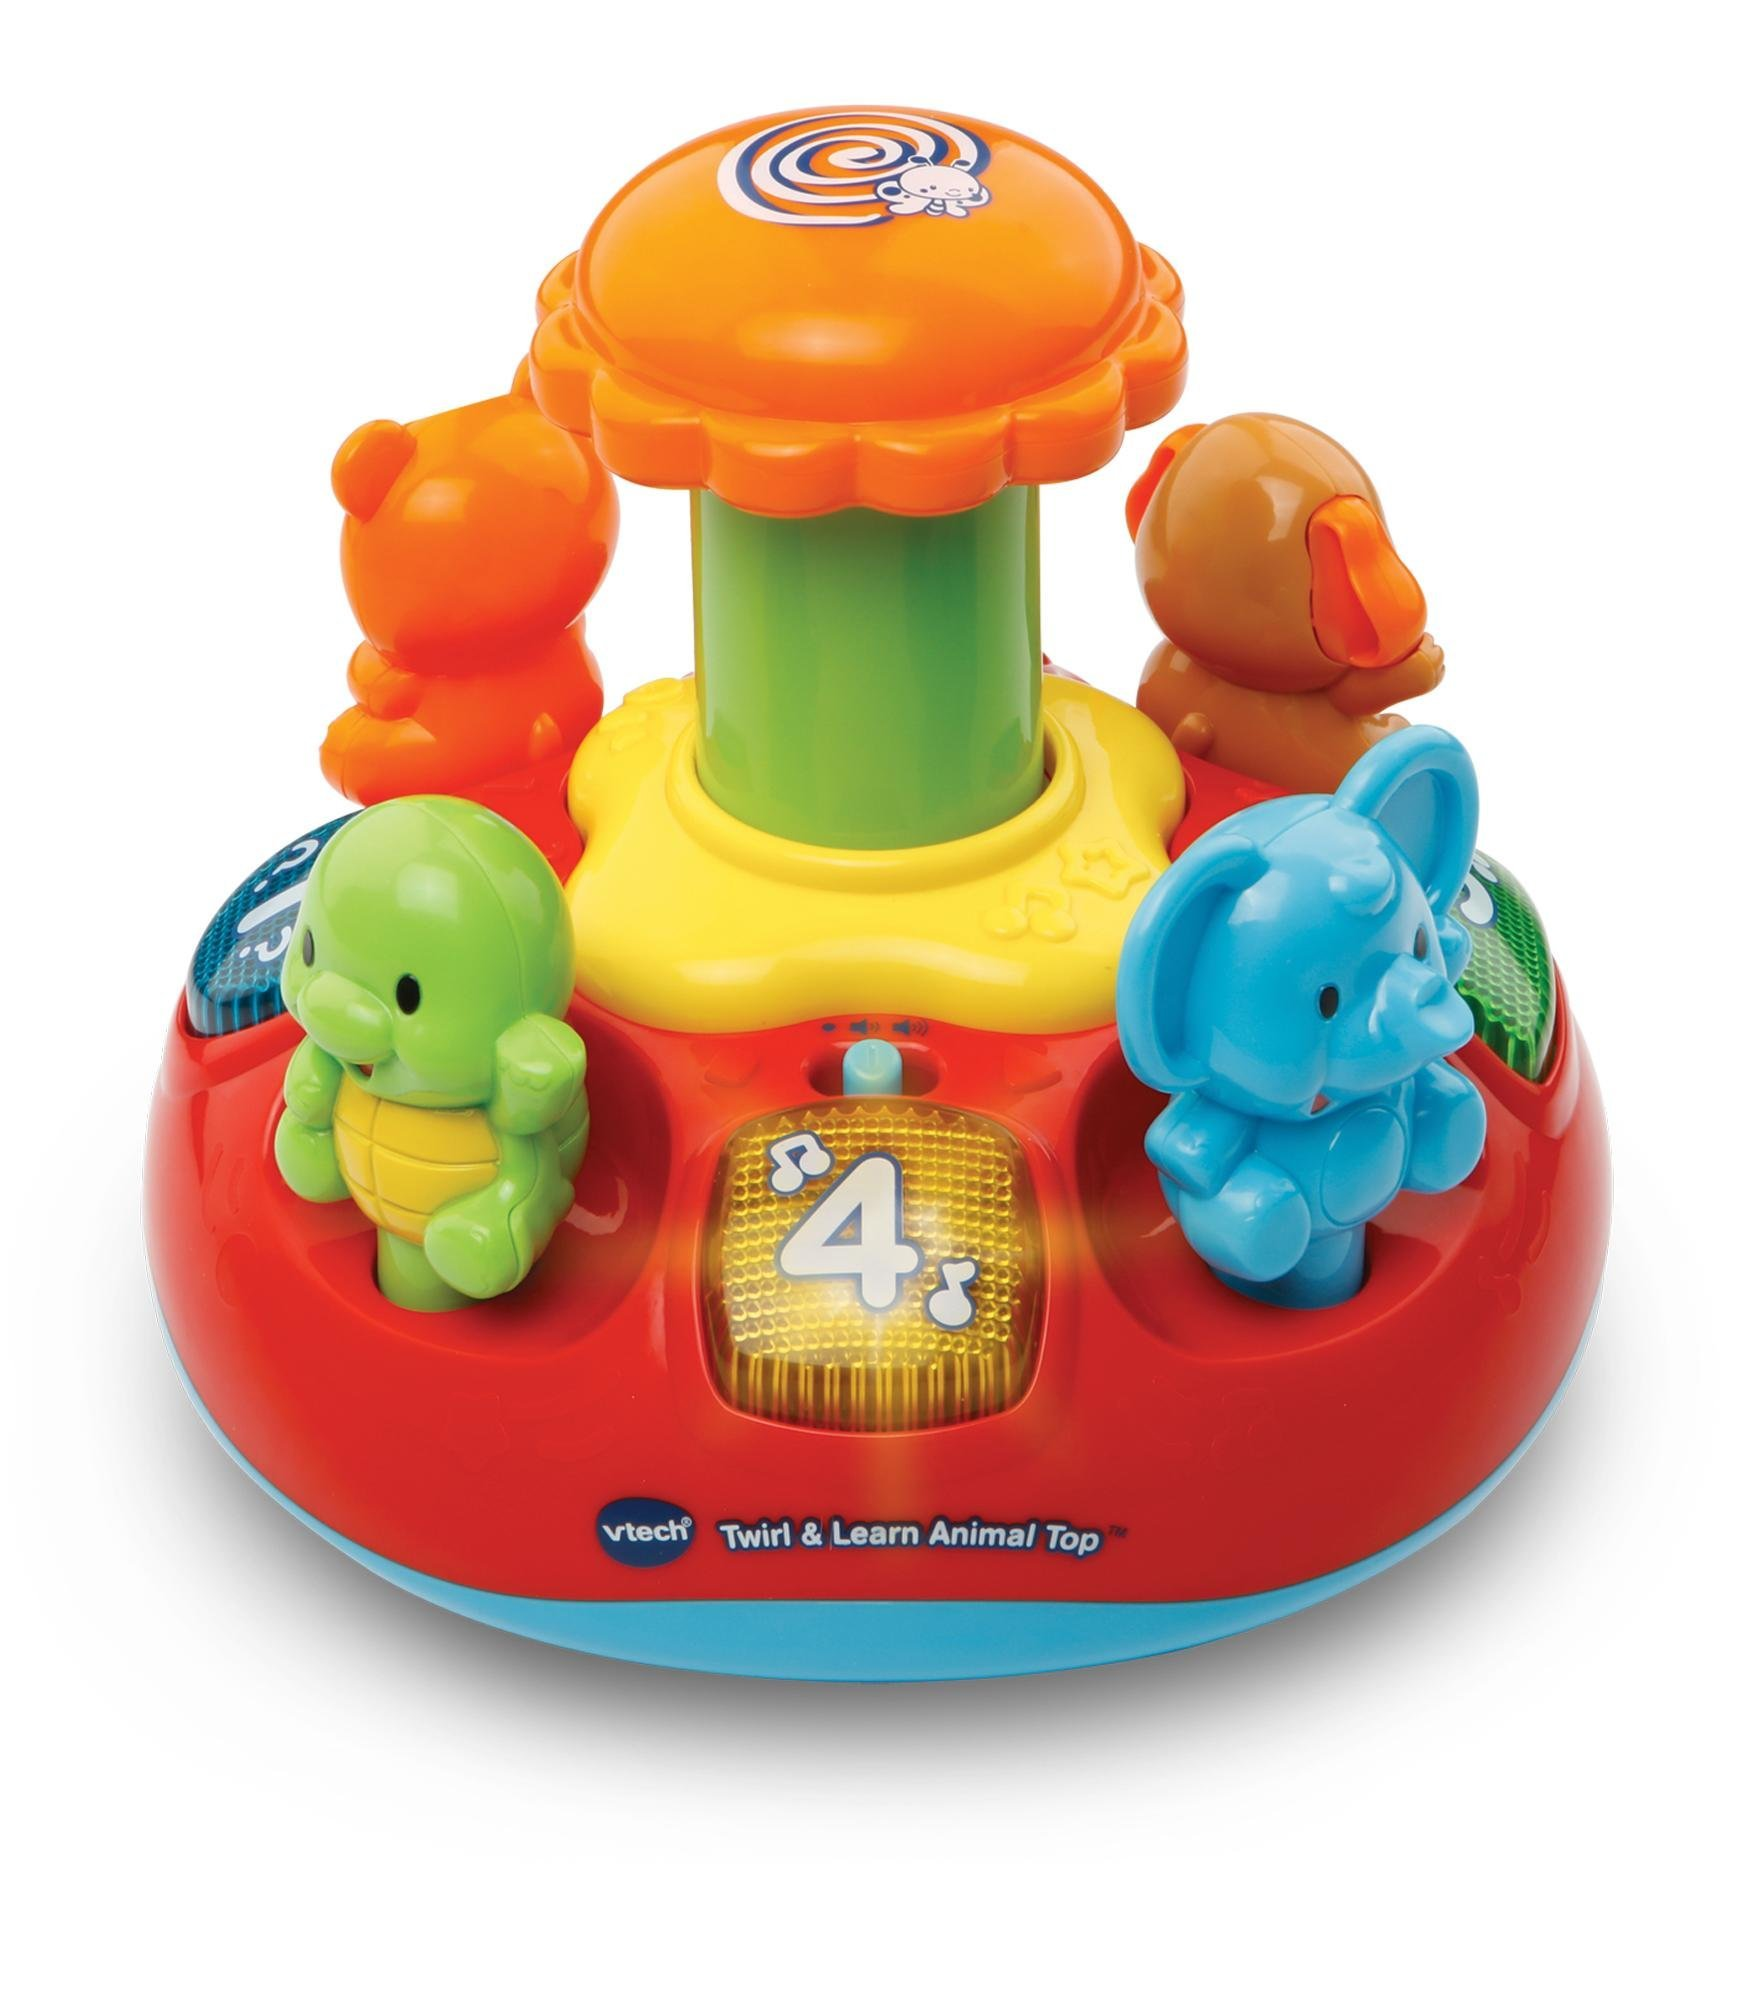 Permalink to The Best Of Vtech Baby toys Pictures